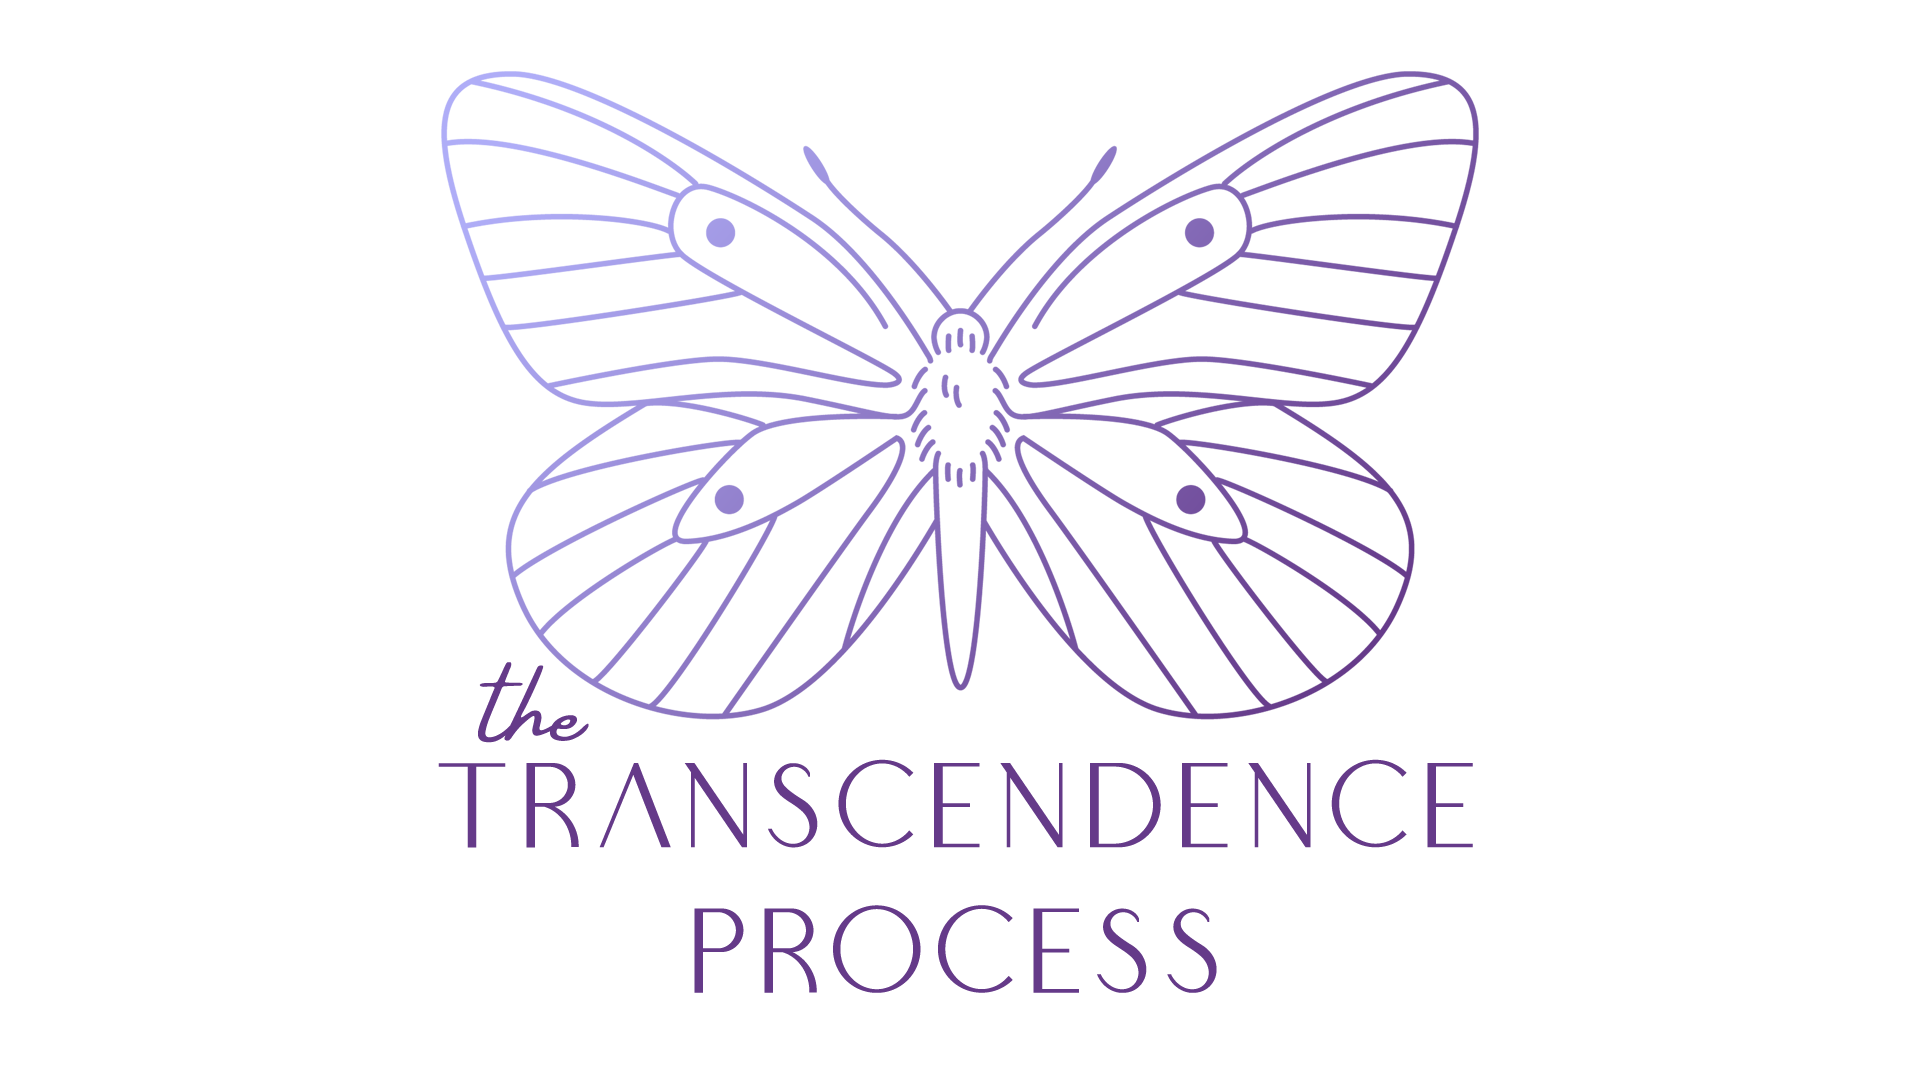 The Transcendence Process